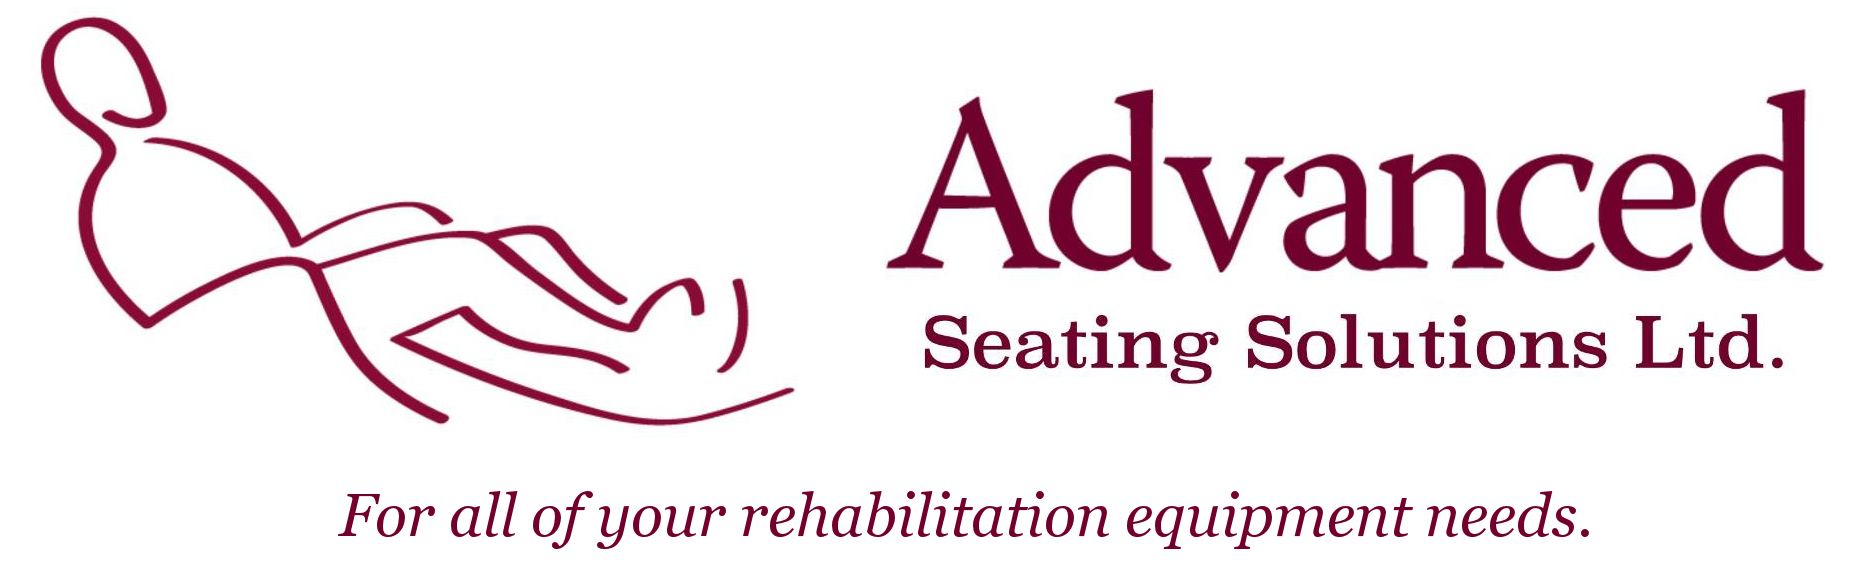 Advanced Seating Solutions